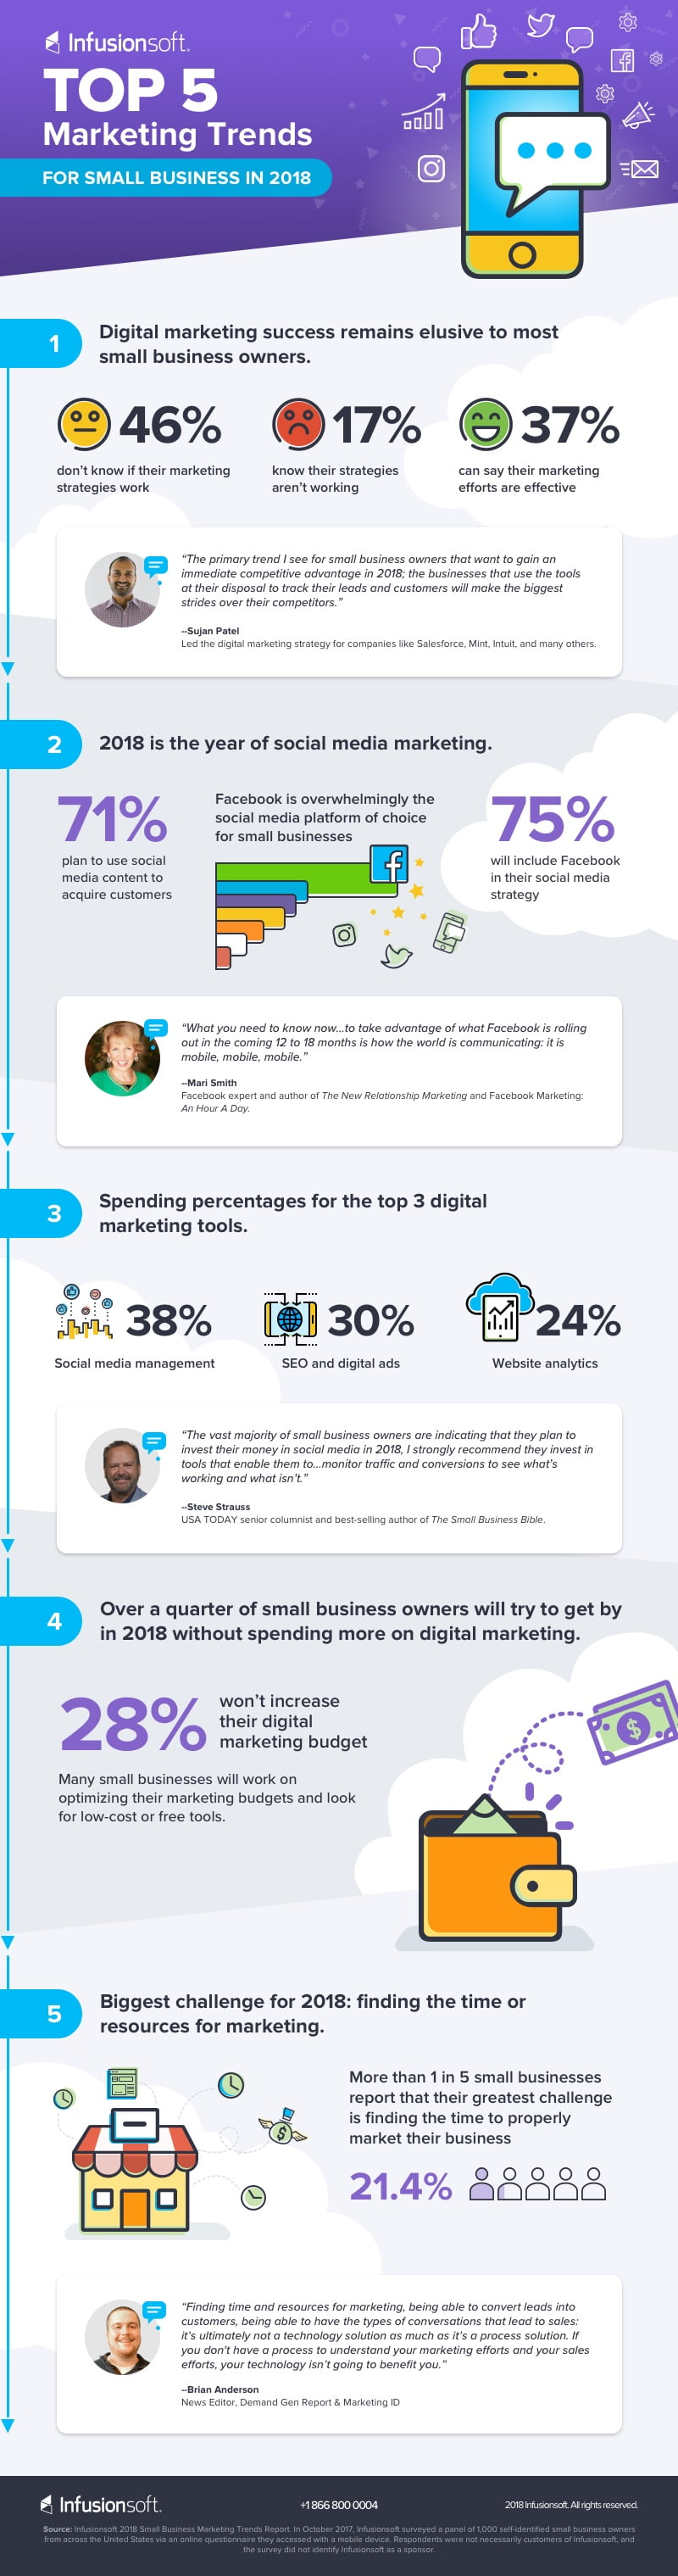 Infusionsoft Small Business Trends 2018 Infographic